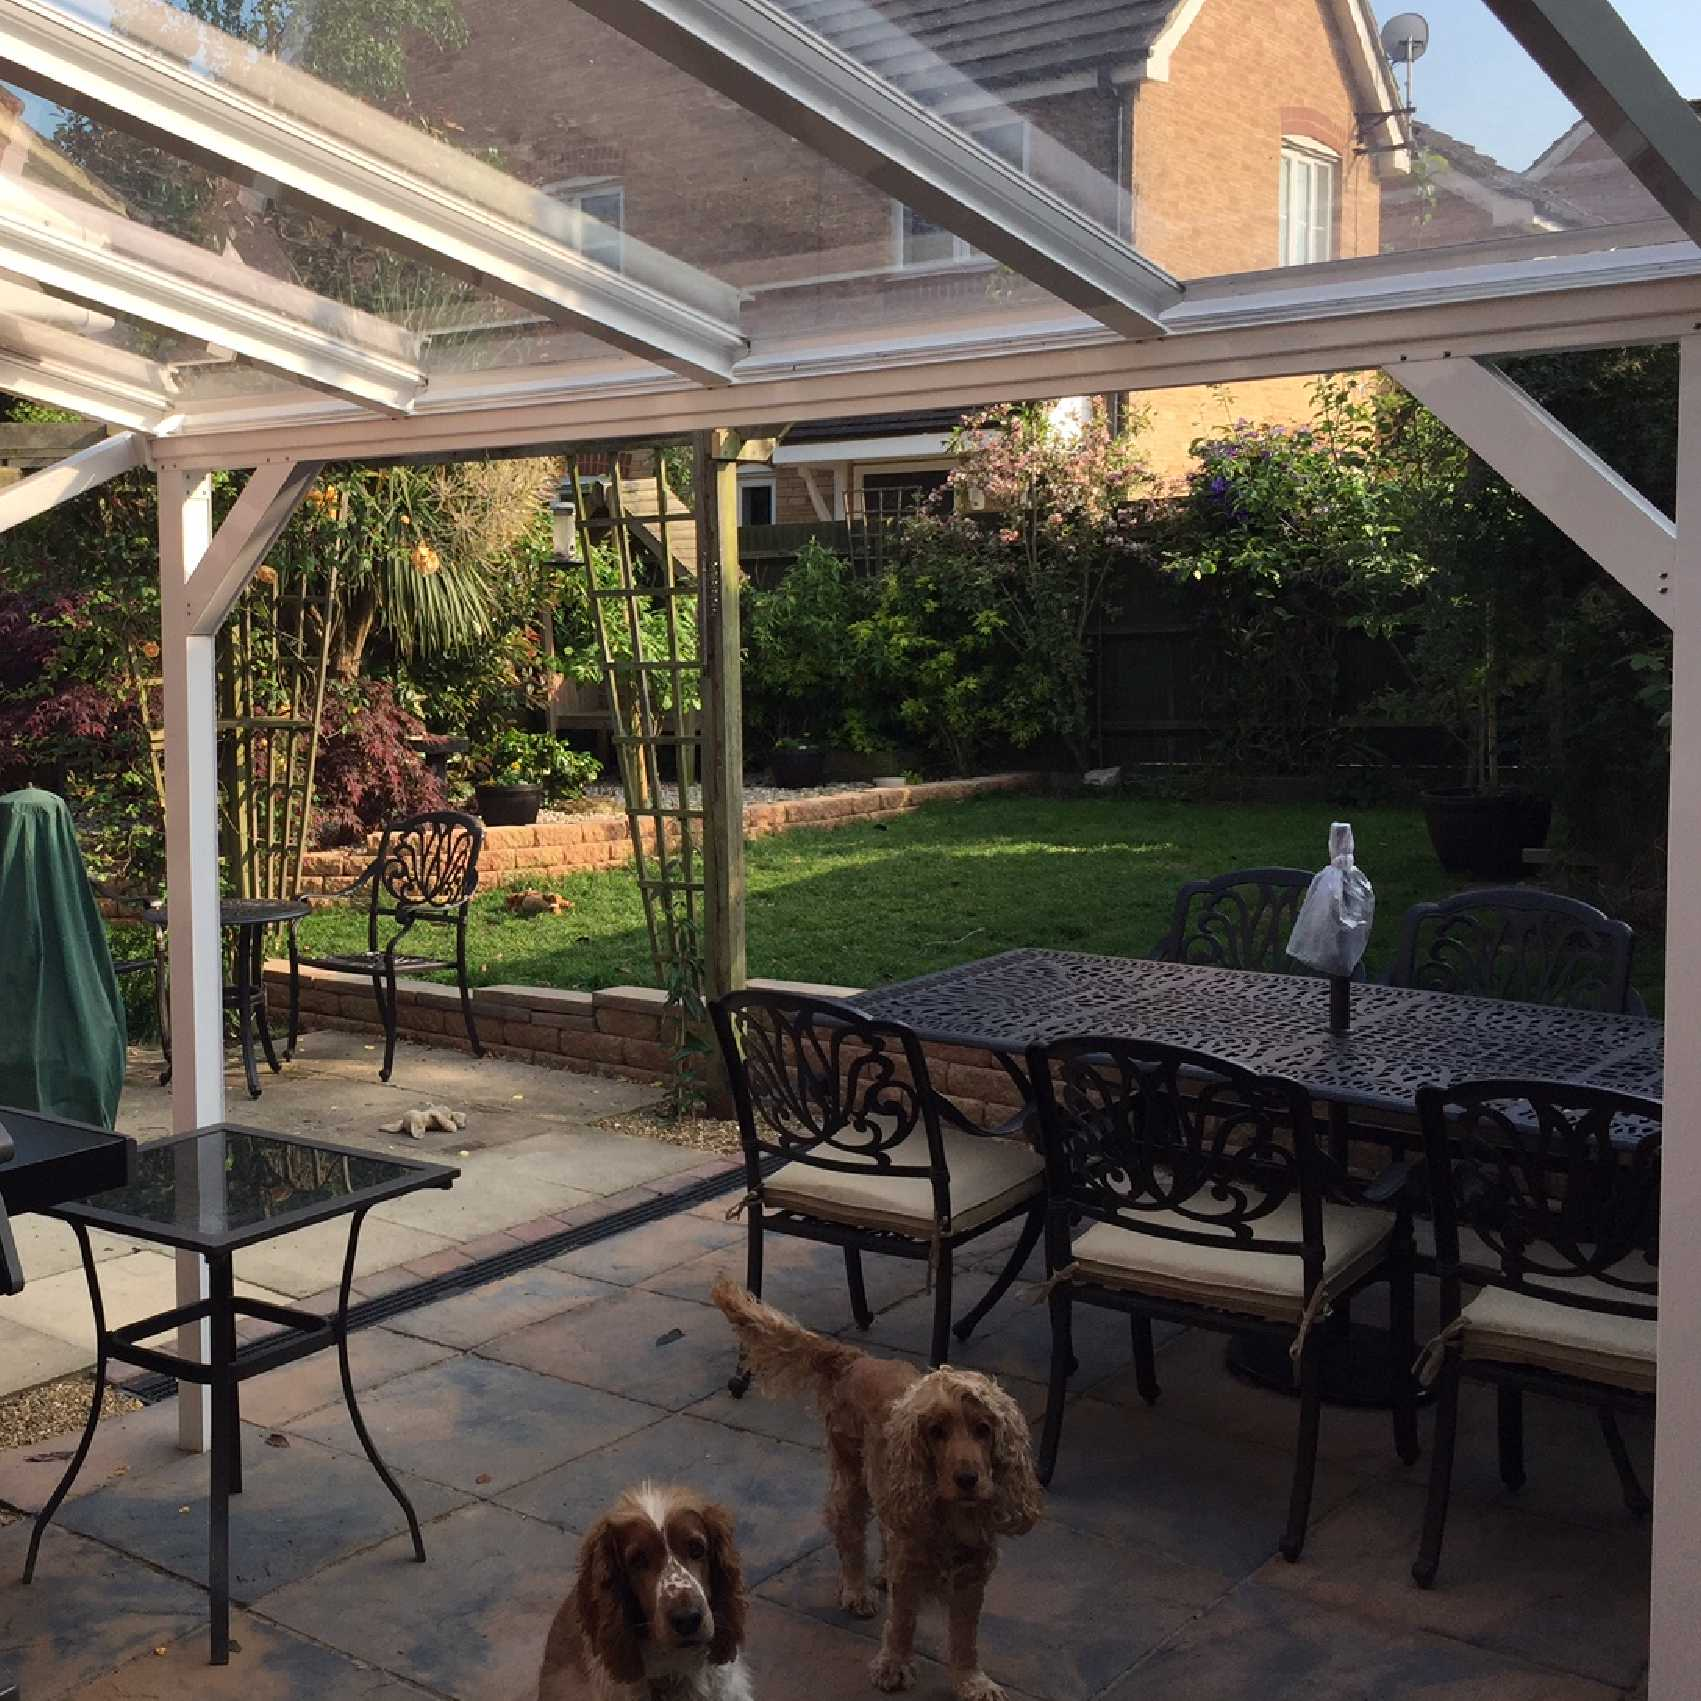 Affordable Omega Smart Lean-To Canopy UNGLAZED for 6mm Glazing - 3.5m (W) x 3.5m (P), (3) Supporting Posts